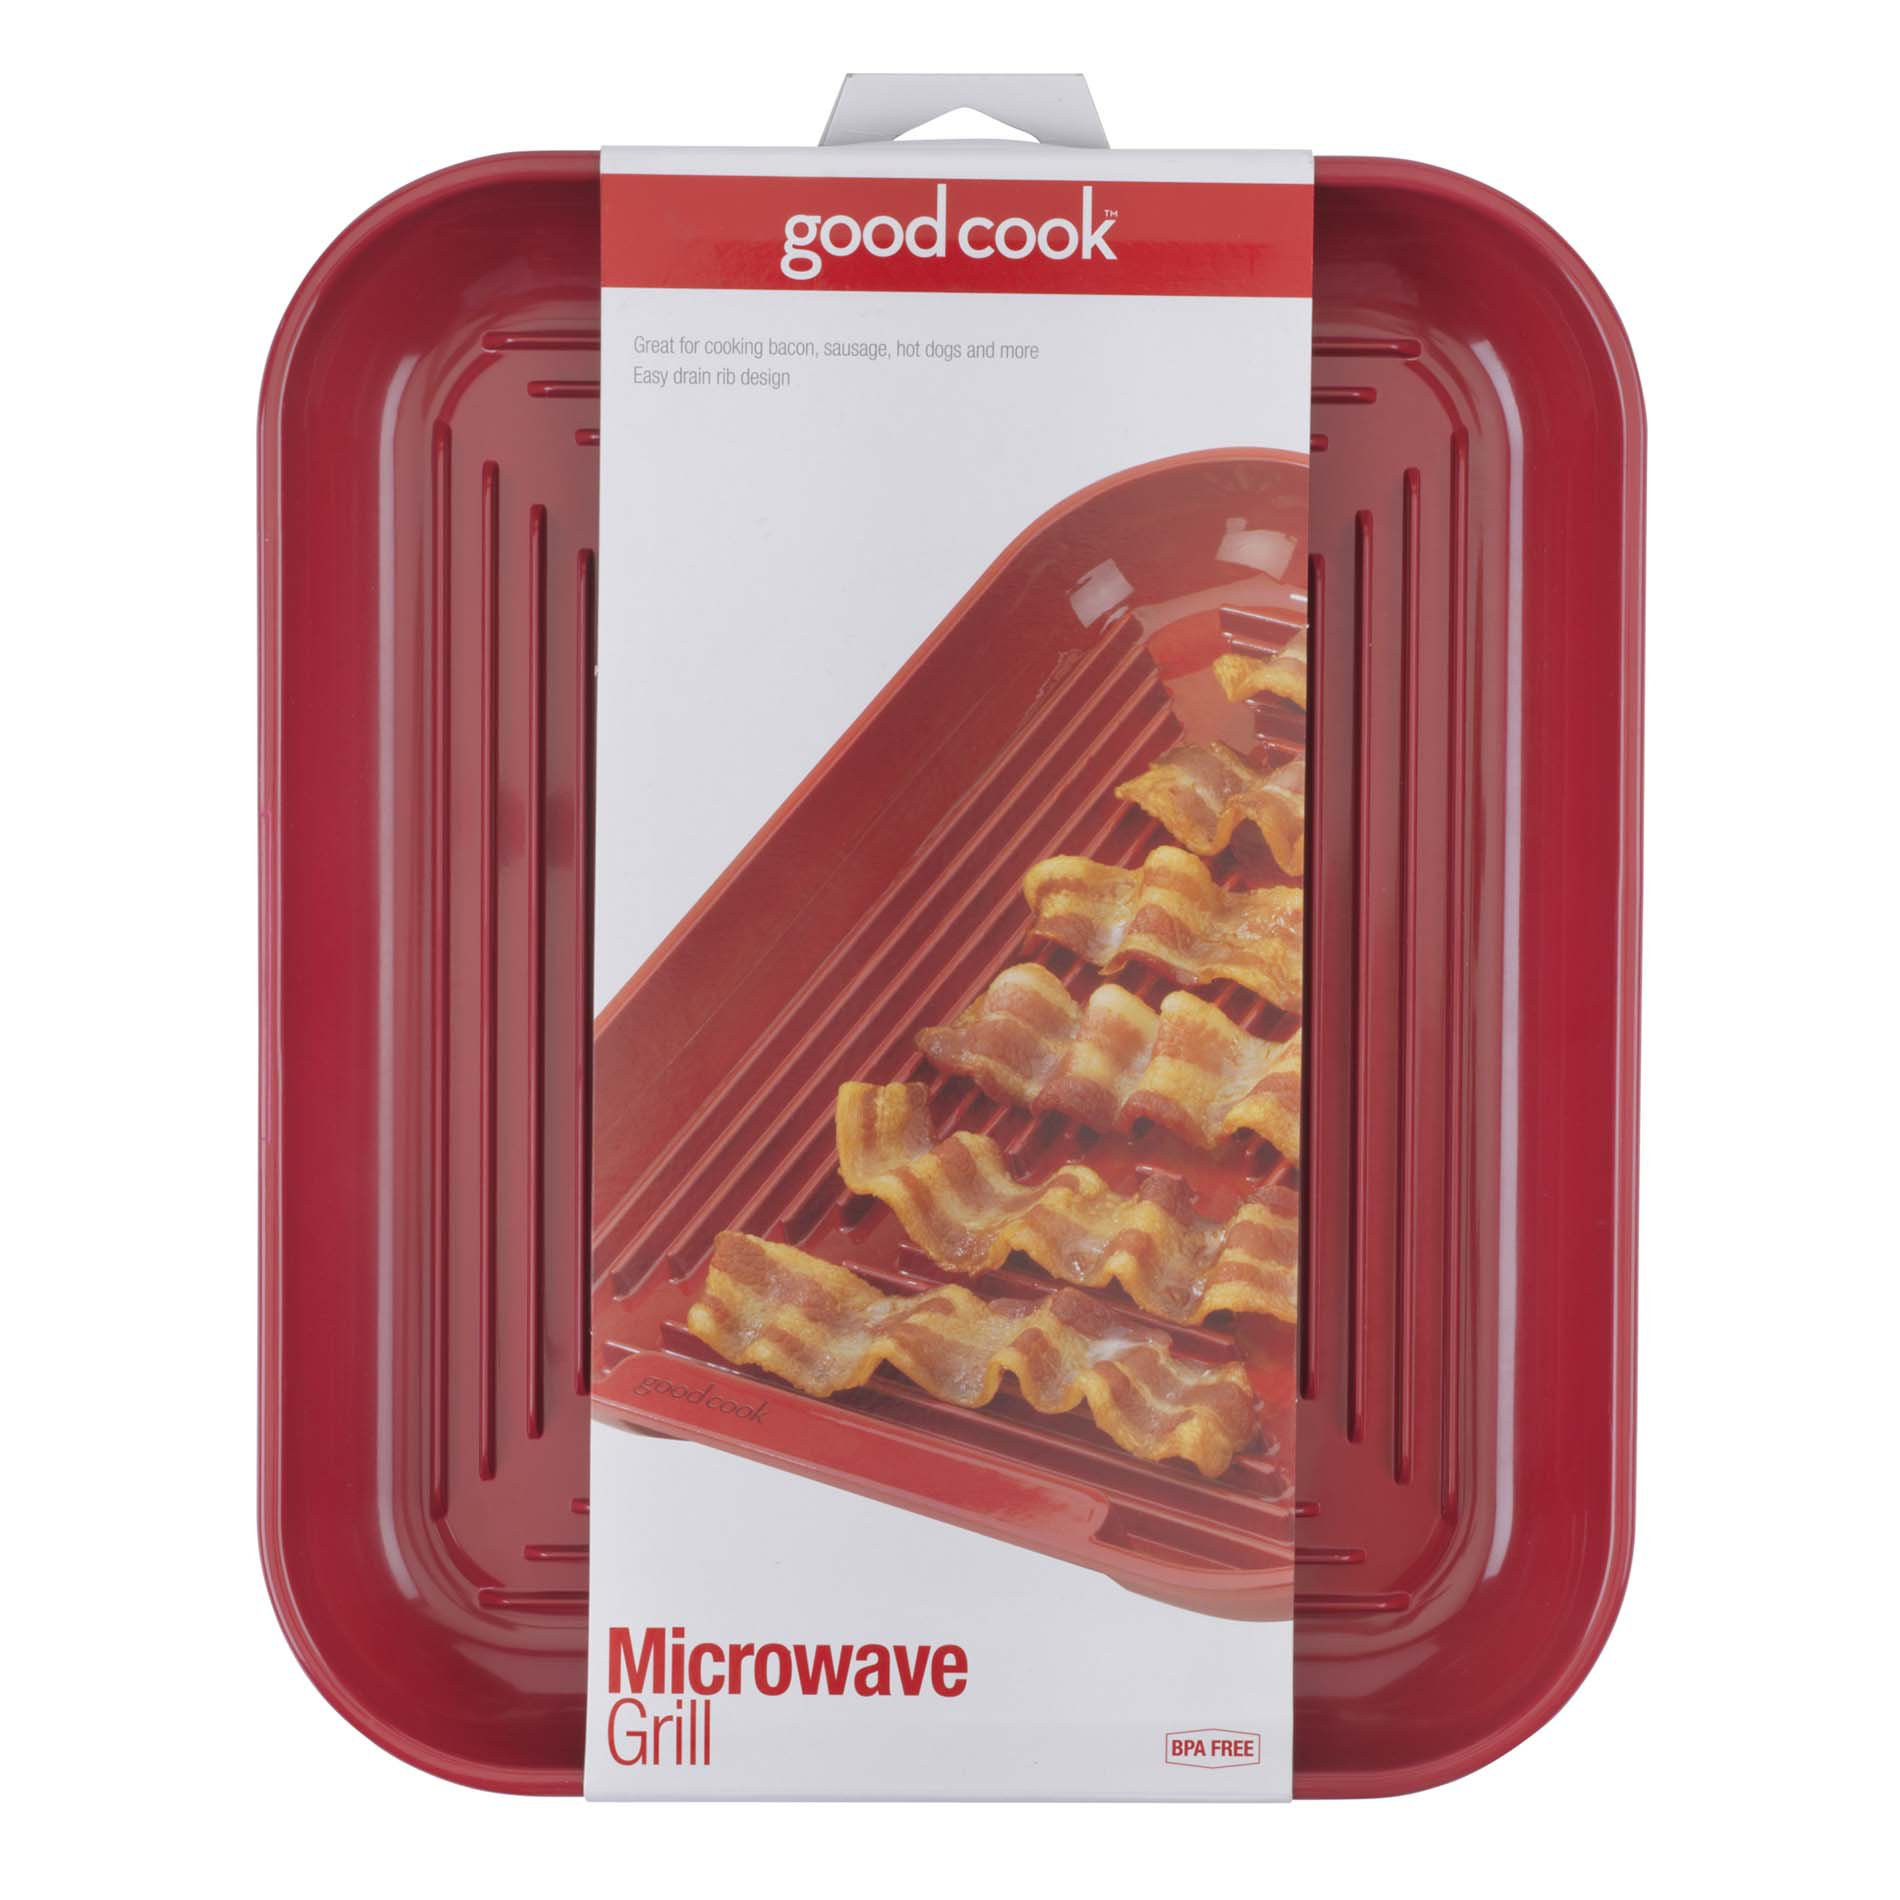 good cook microwave grill